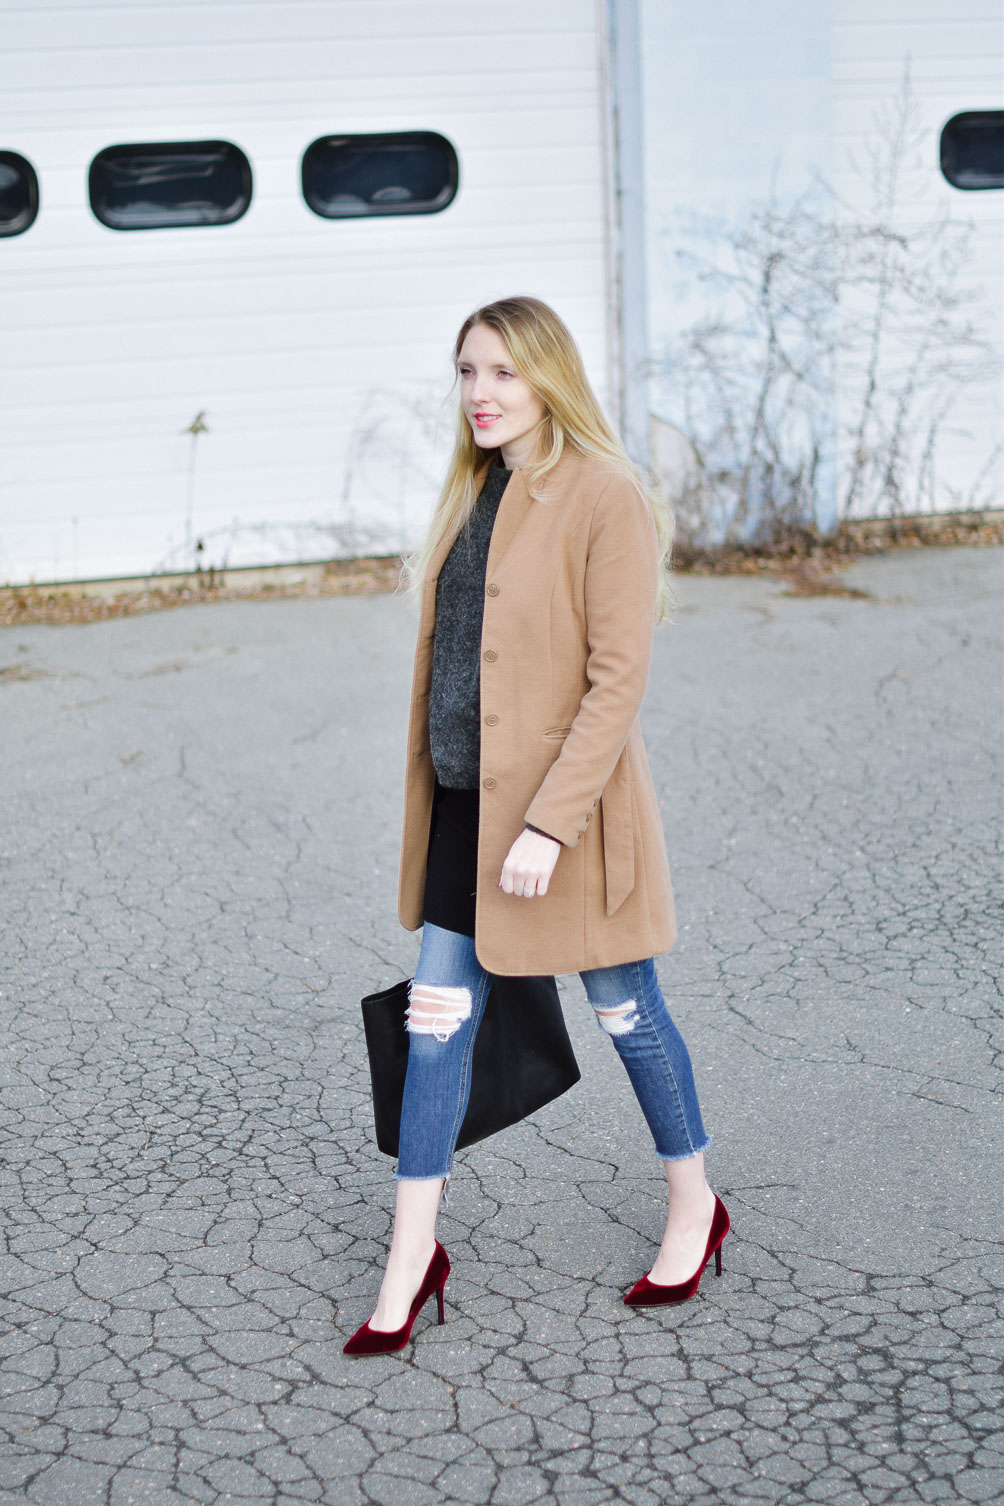 styling a layered winter outfit with this camel coat, chunky sweater, distressed denim, and velvet pumps